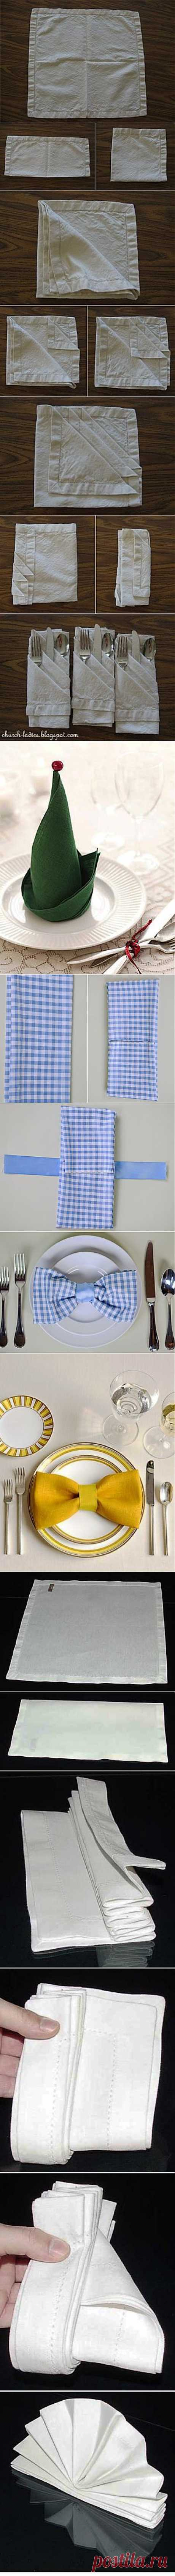 22 ways to put a napkin for a holiday table.